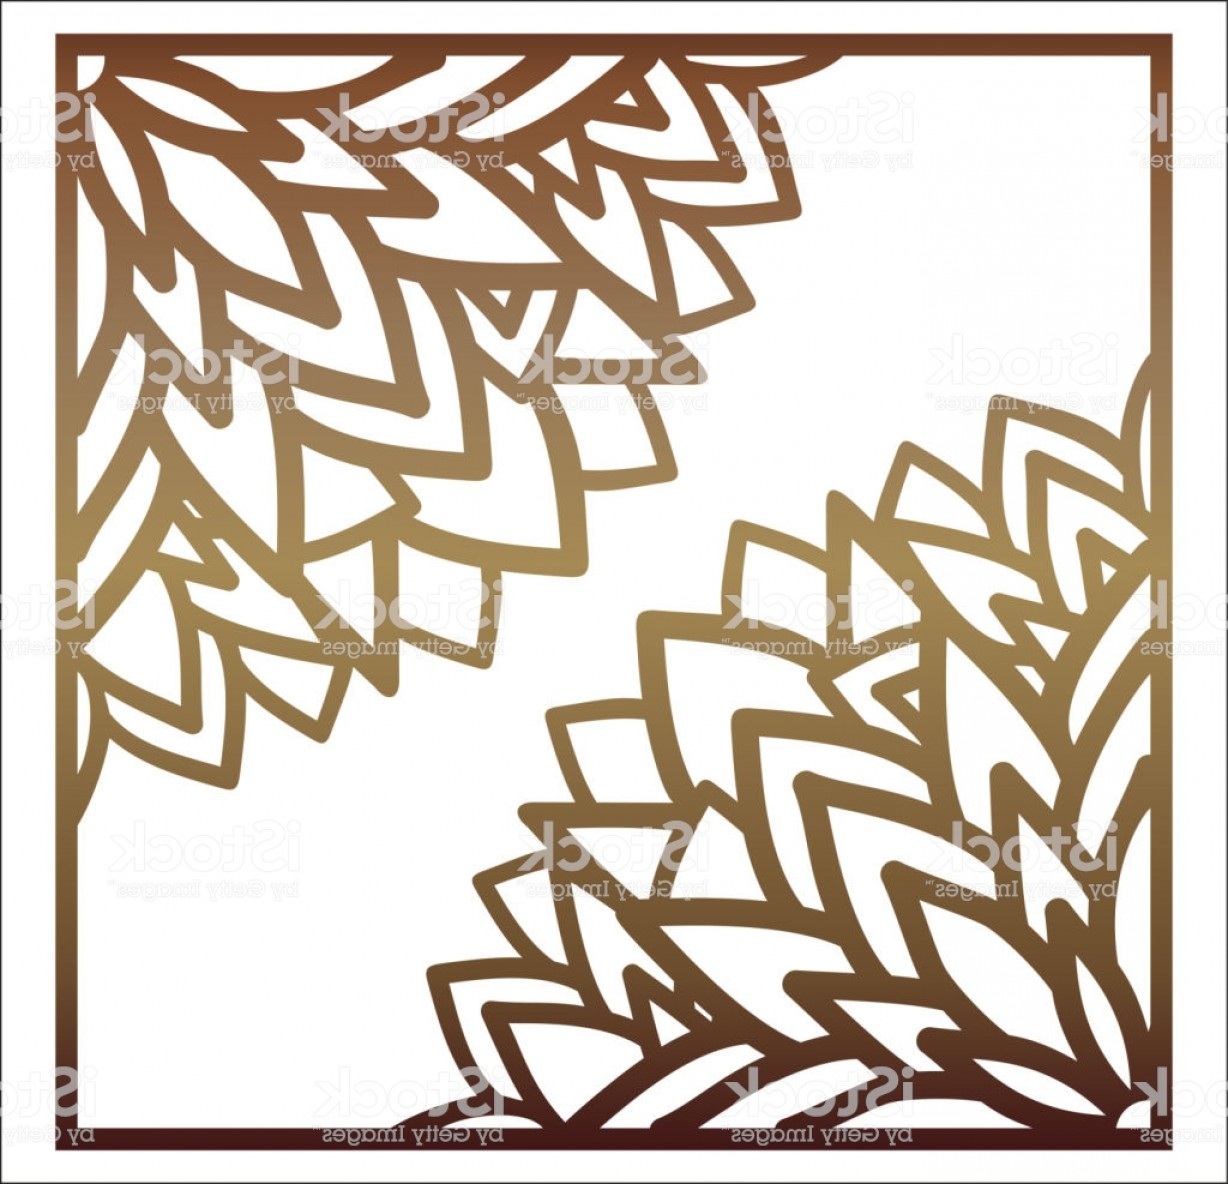 Champagne Vinyl Plotter Vector Art: Vector Laser Cut Panel Abstract Pattern Template For Decorative Panel Template For Gm